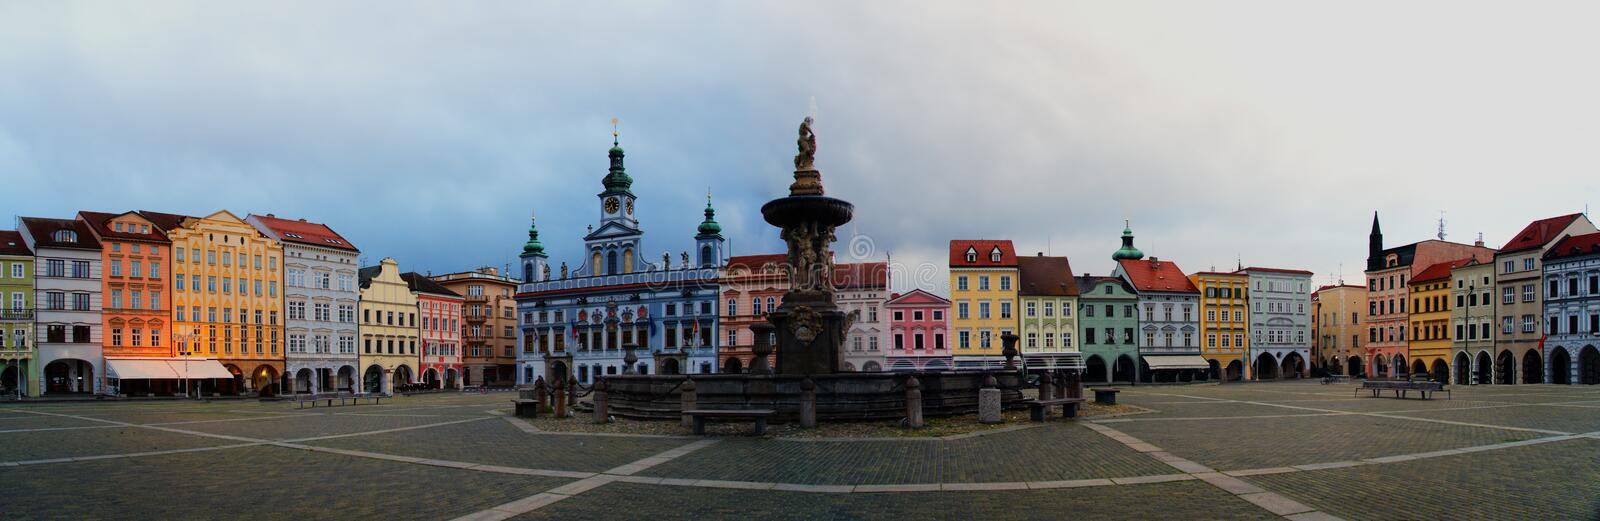 """Ceske Budejovice"" square extra wide panorama in the Czech Republic. ""Ceske Budejovice"" square extra wide panorama in the Czech Republic, South royalty free stock photos"